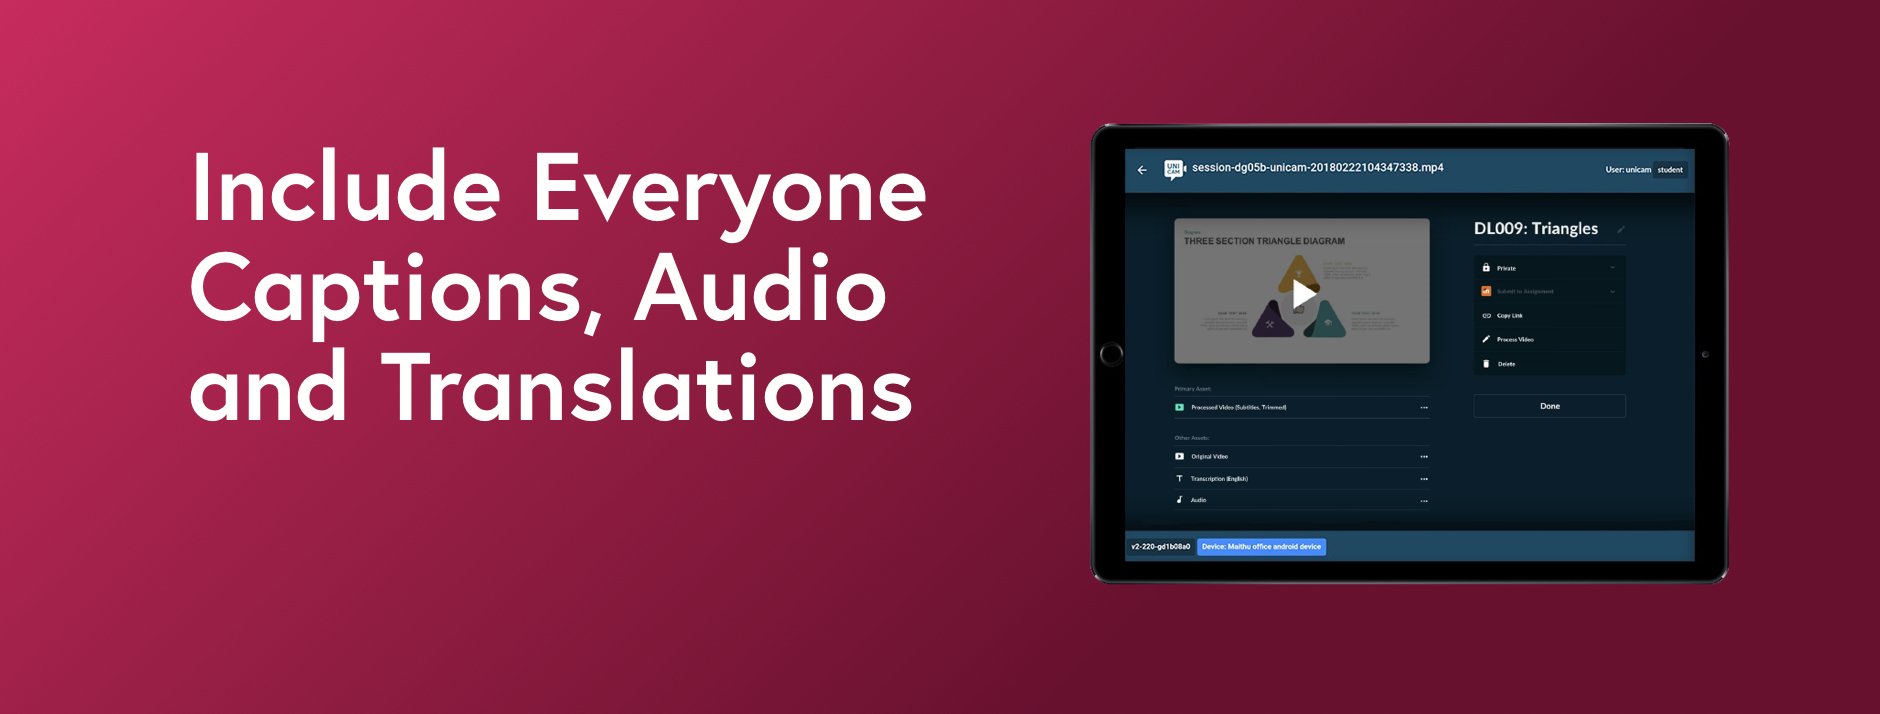 Include Everyone,Captions, Audio and Translations